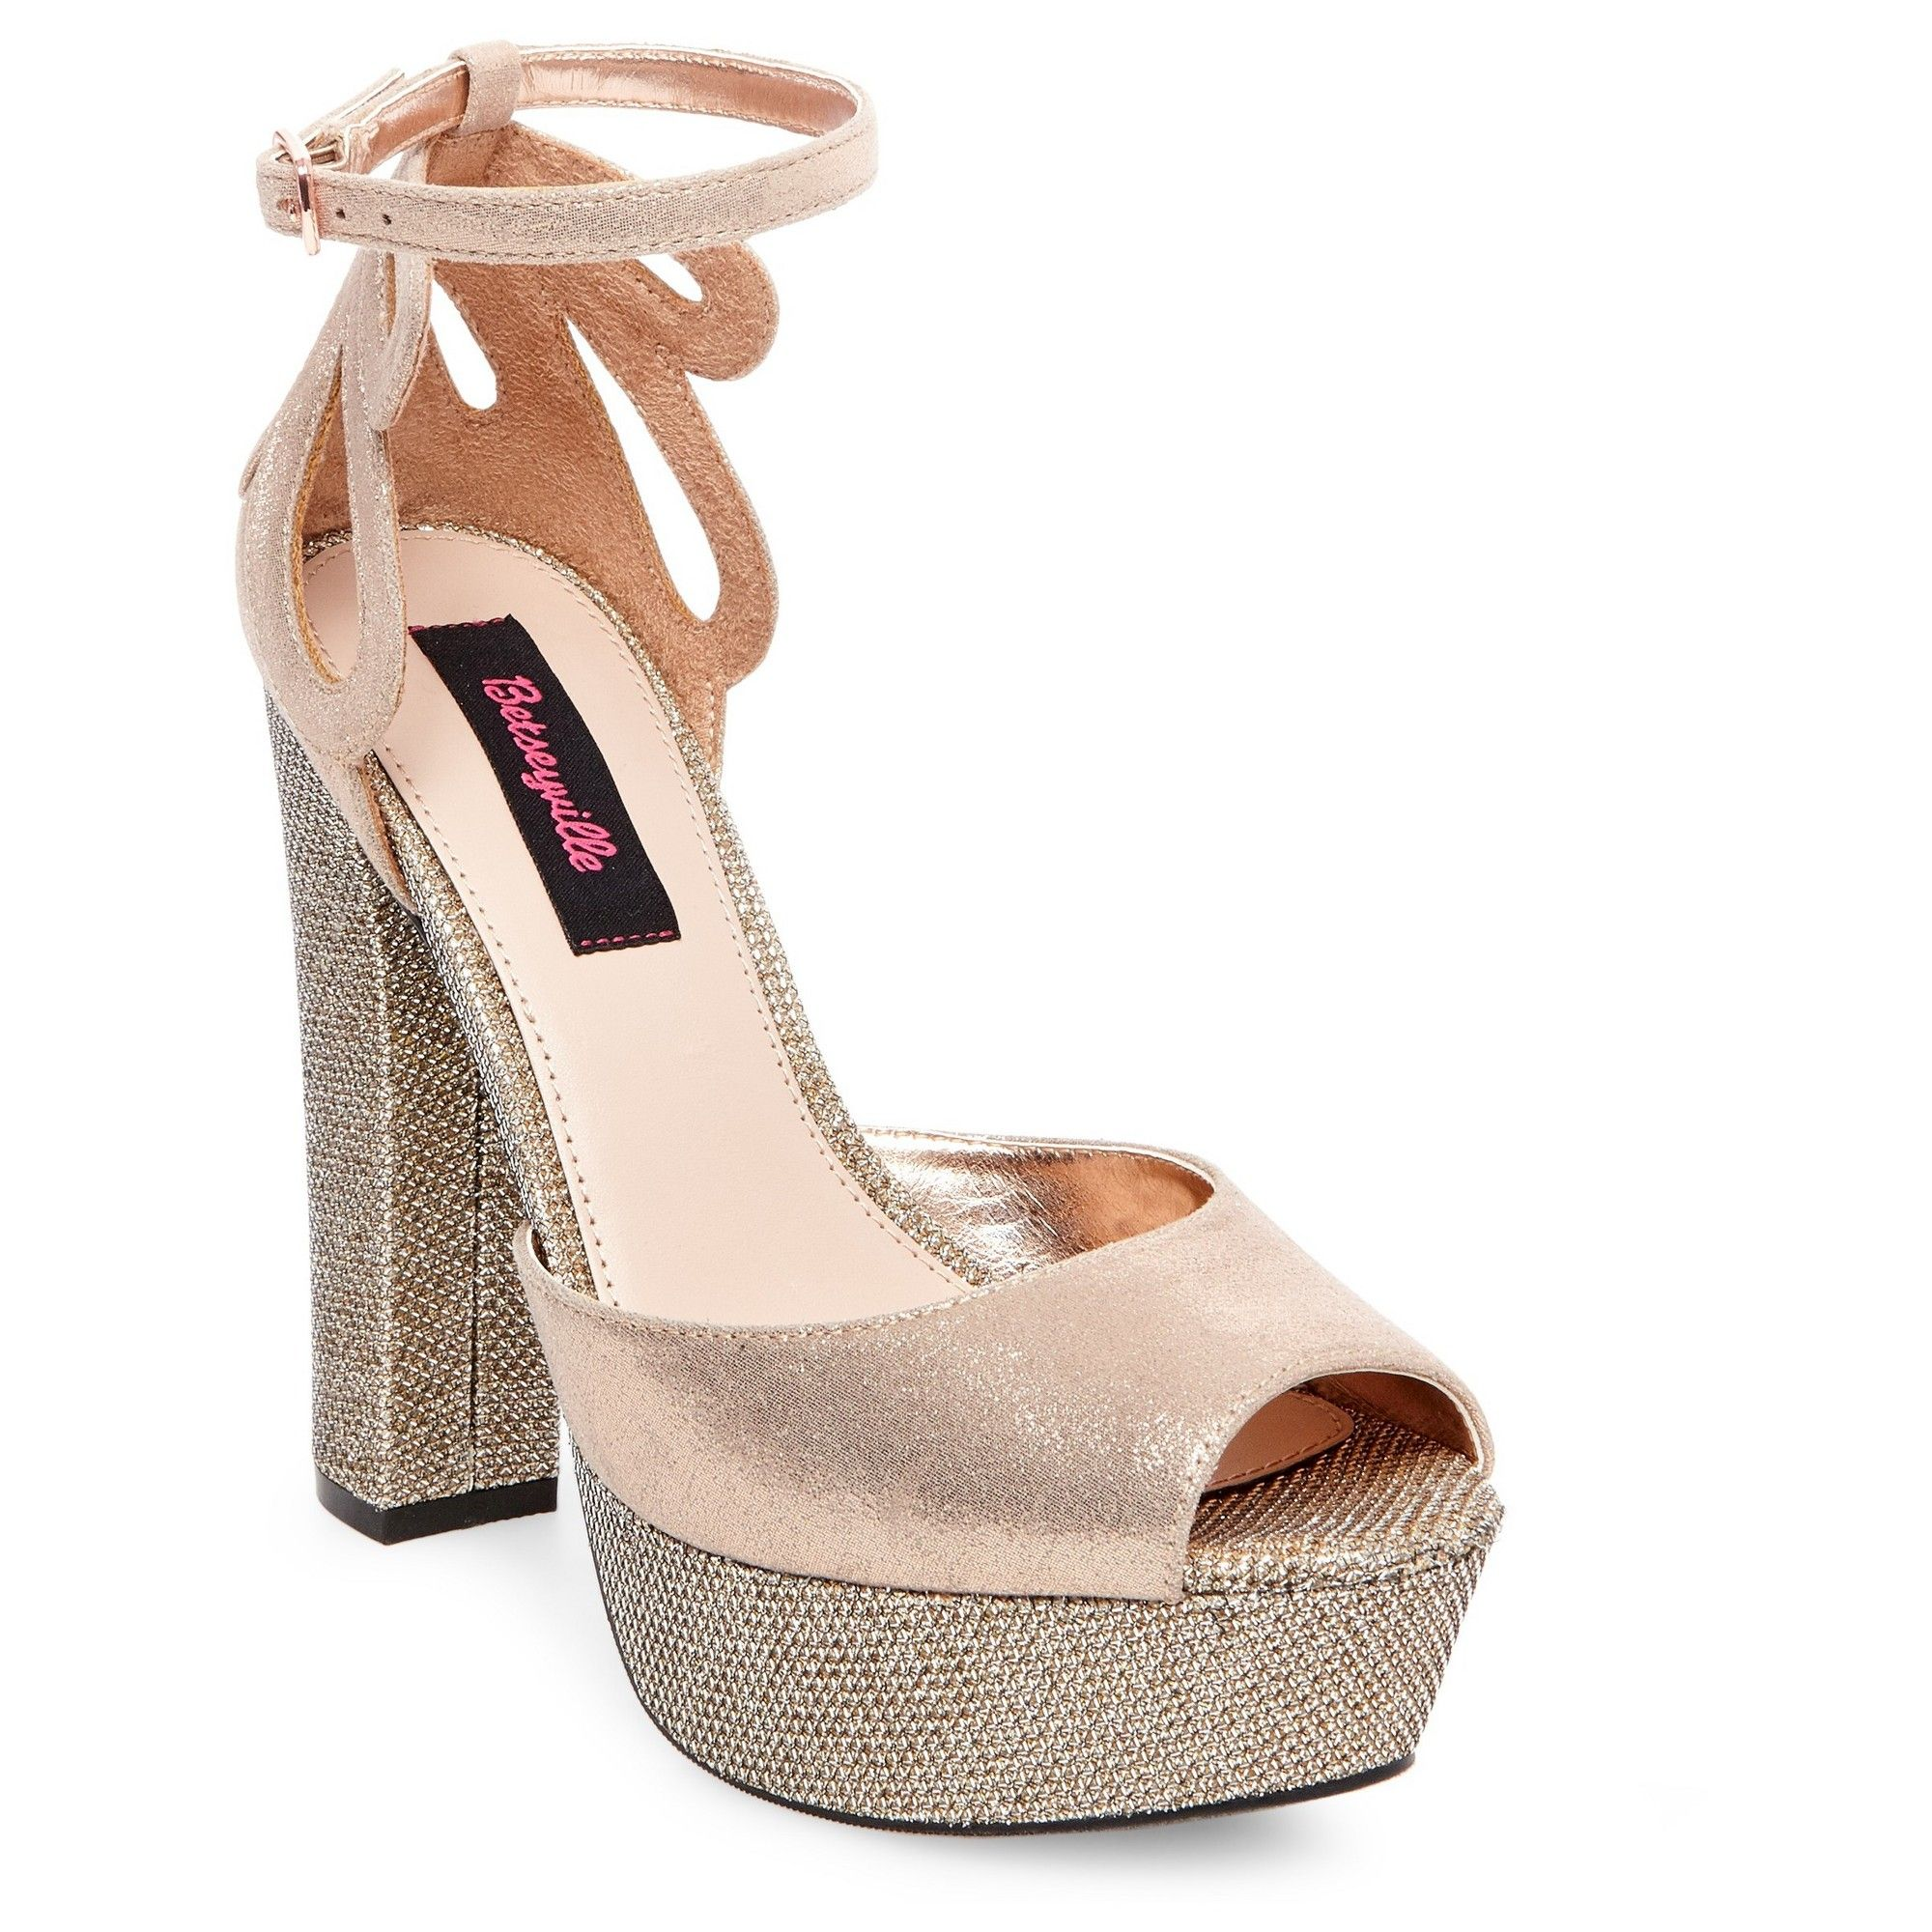 fb6398cd58a2 Women s Betseyville Daisy Glitter Mesh Platform Block Heel Sandals - Rose  Gold 8.5